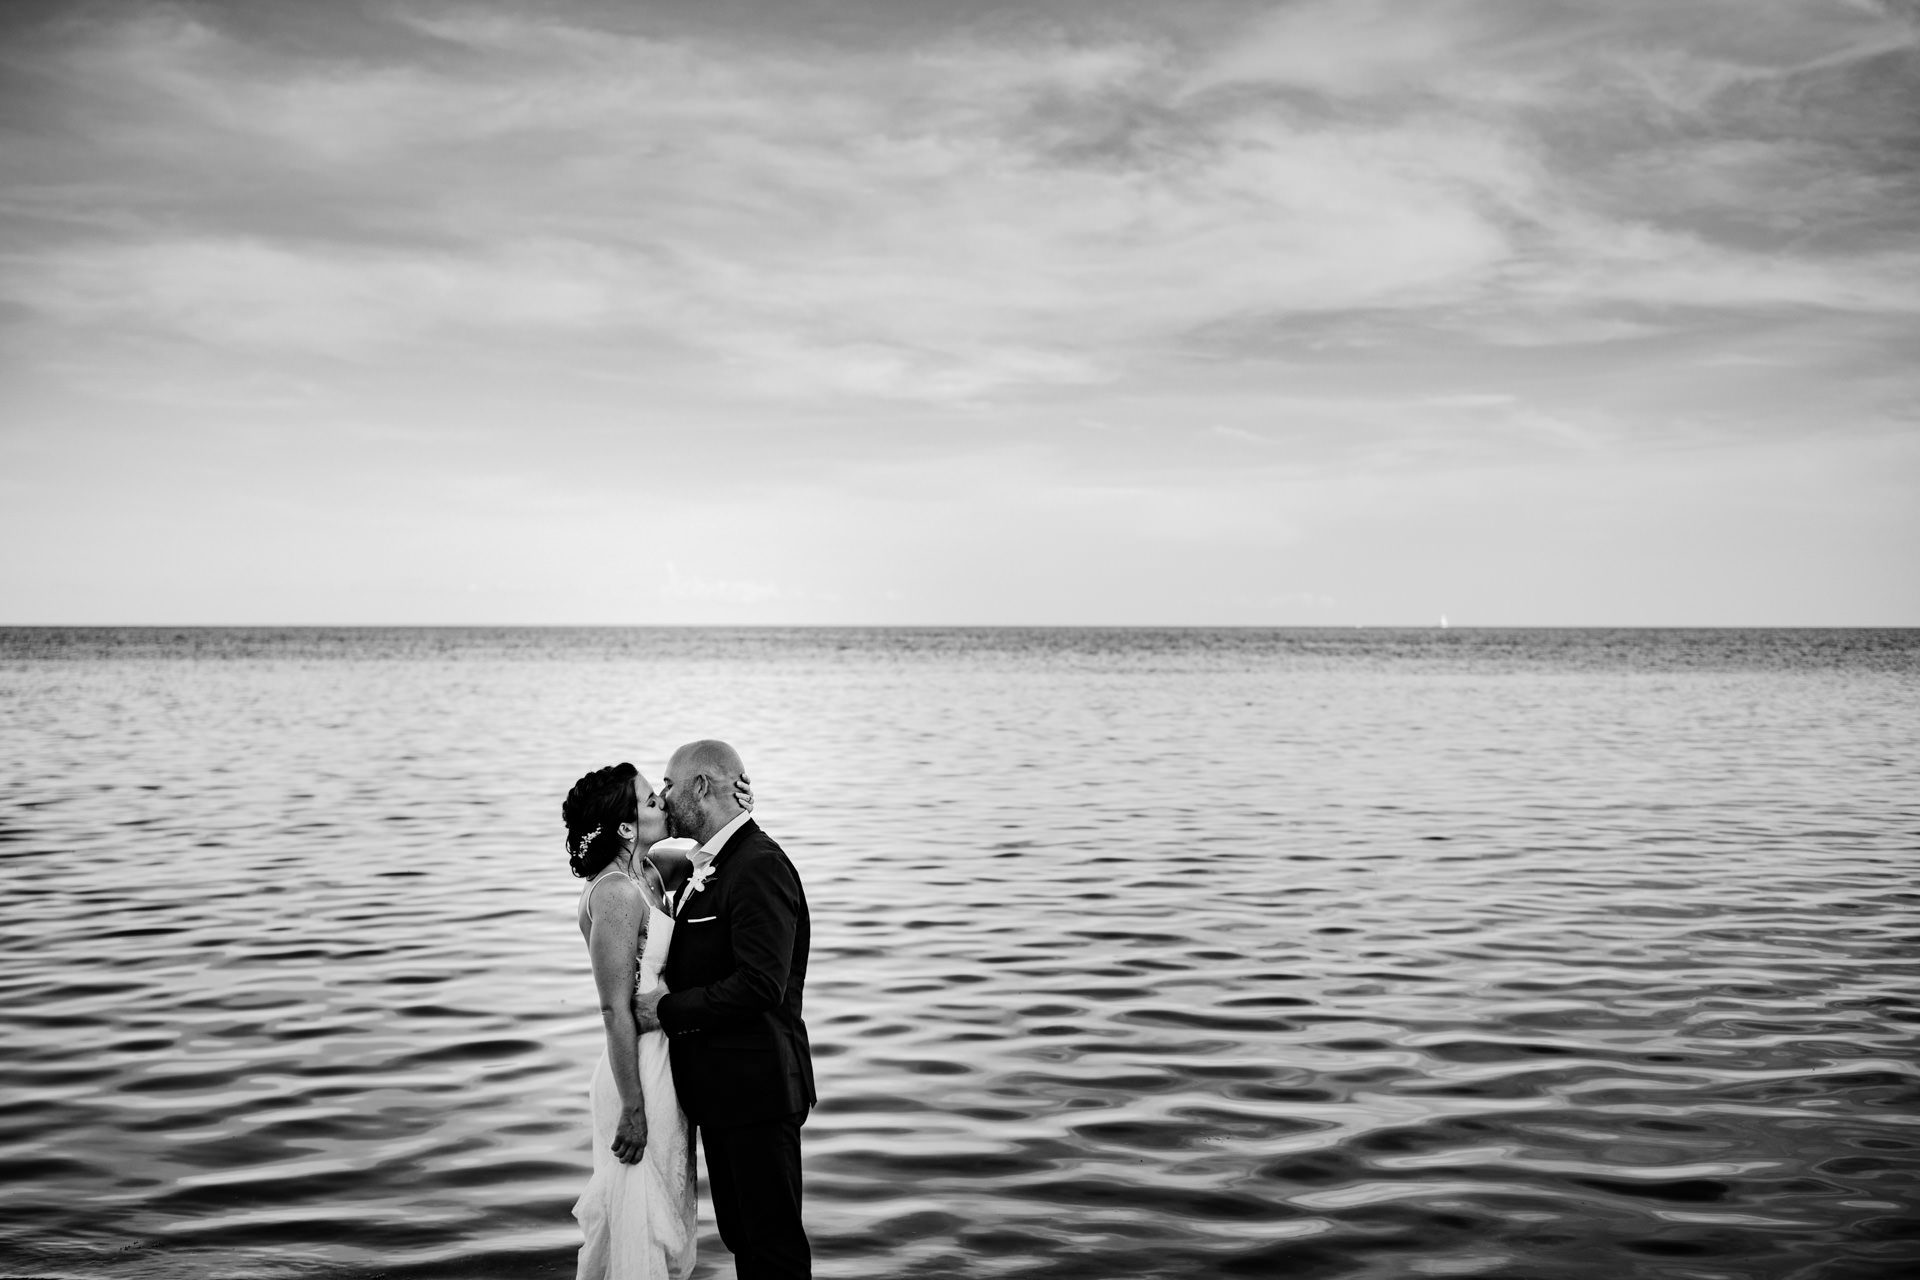 Bride and groom kissing with the ocean in the background at key west.